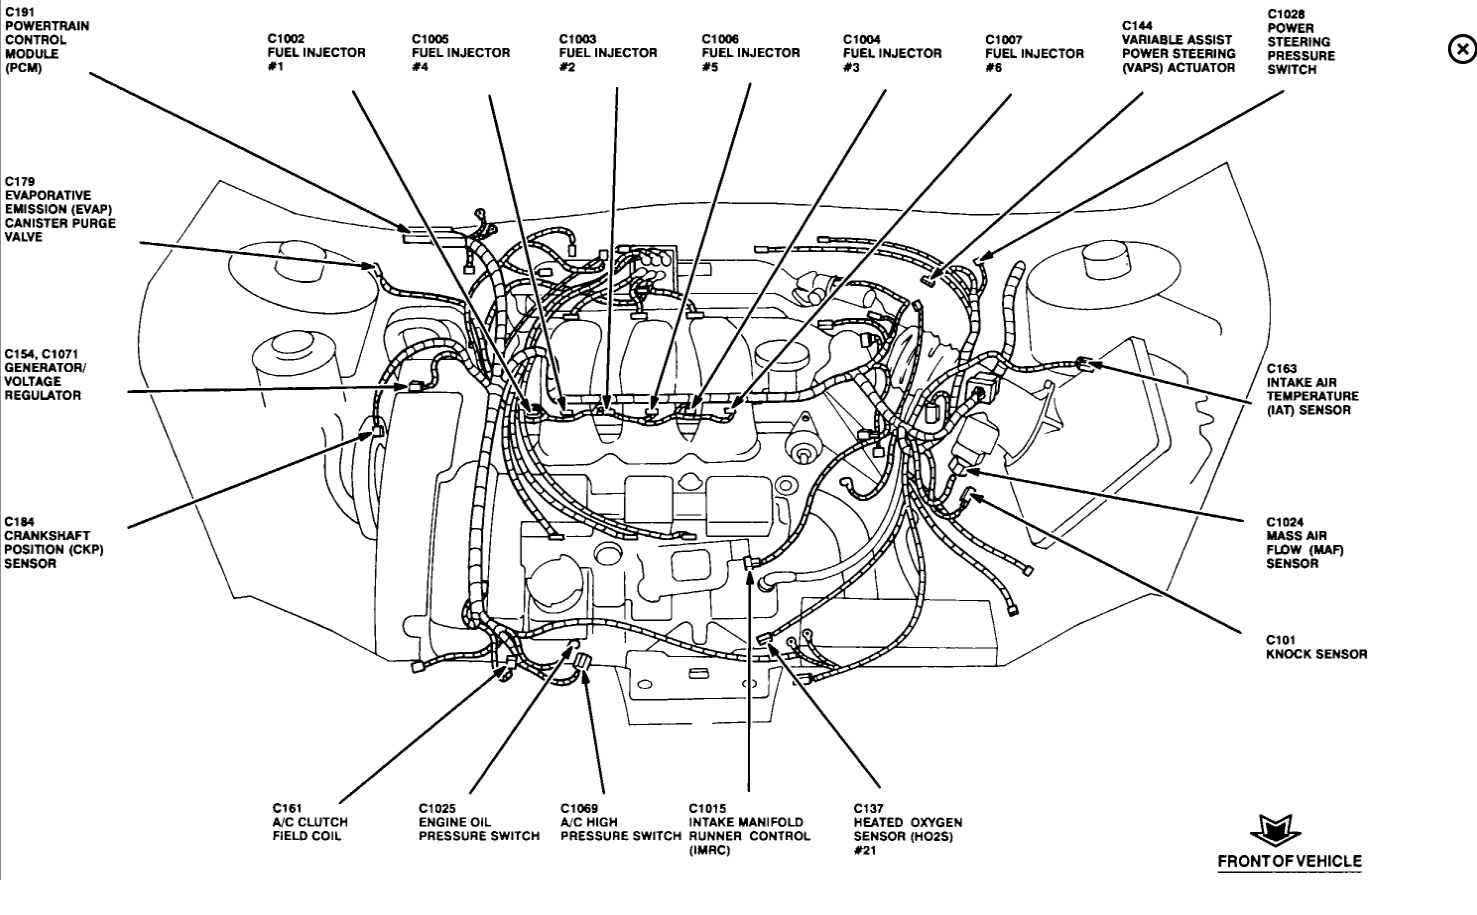 2000 Oldsmobile Intrigue Headlight Wiring Diagram on 2004 Oldsmobile Alero Fuse Diagram